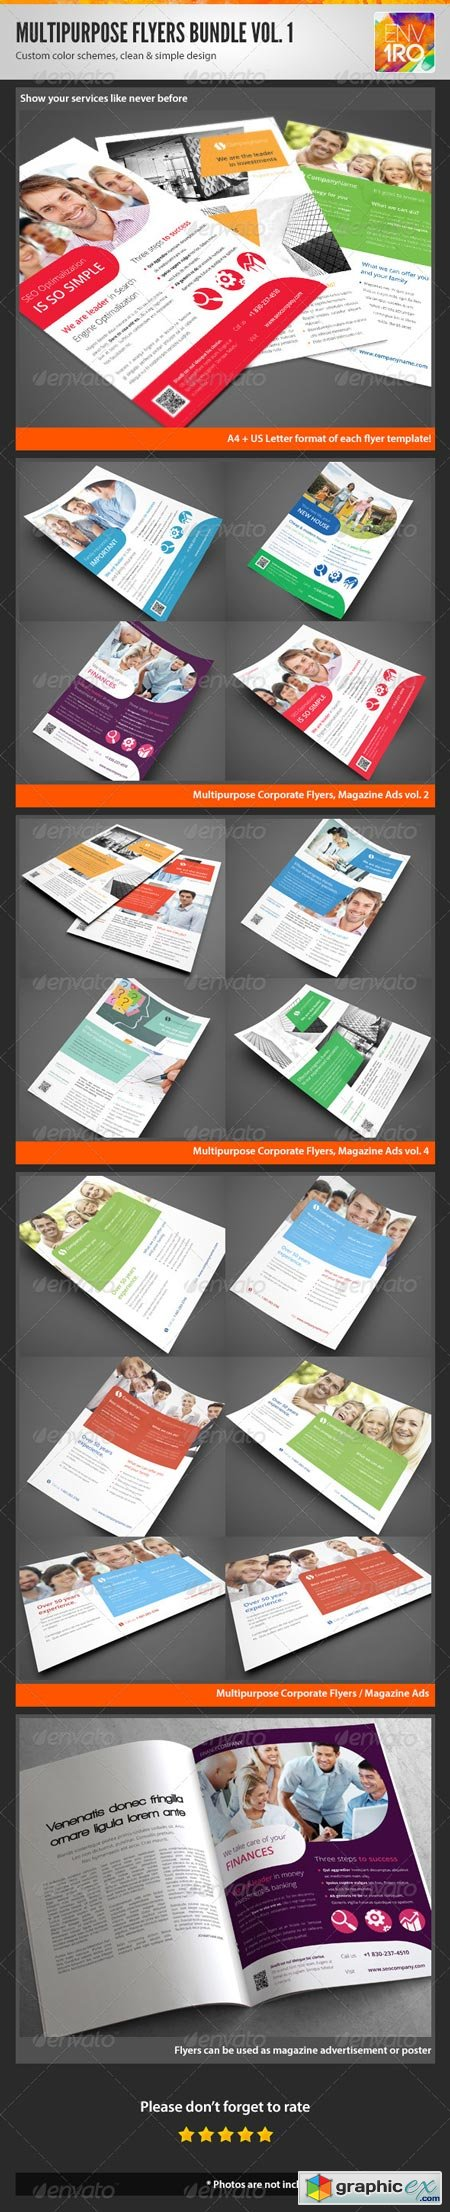 Multipurpose Corporate Flyers Bundle 3in1 vol. 1 3531904